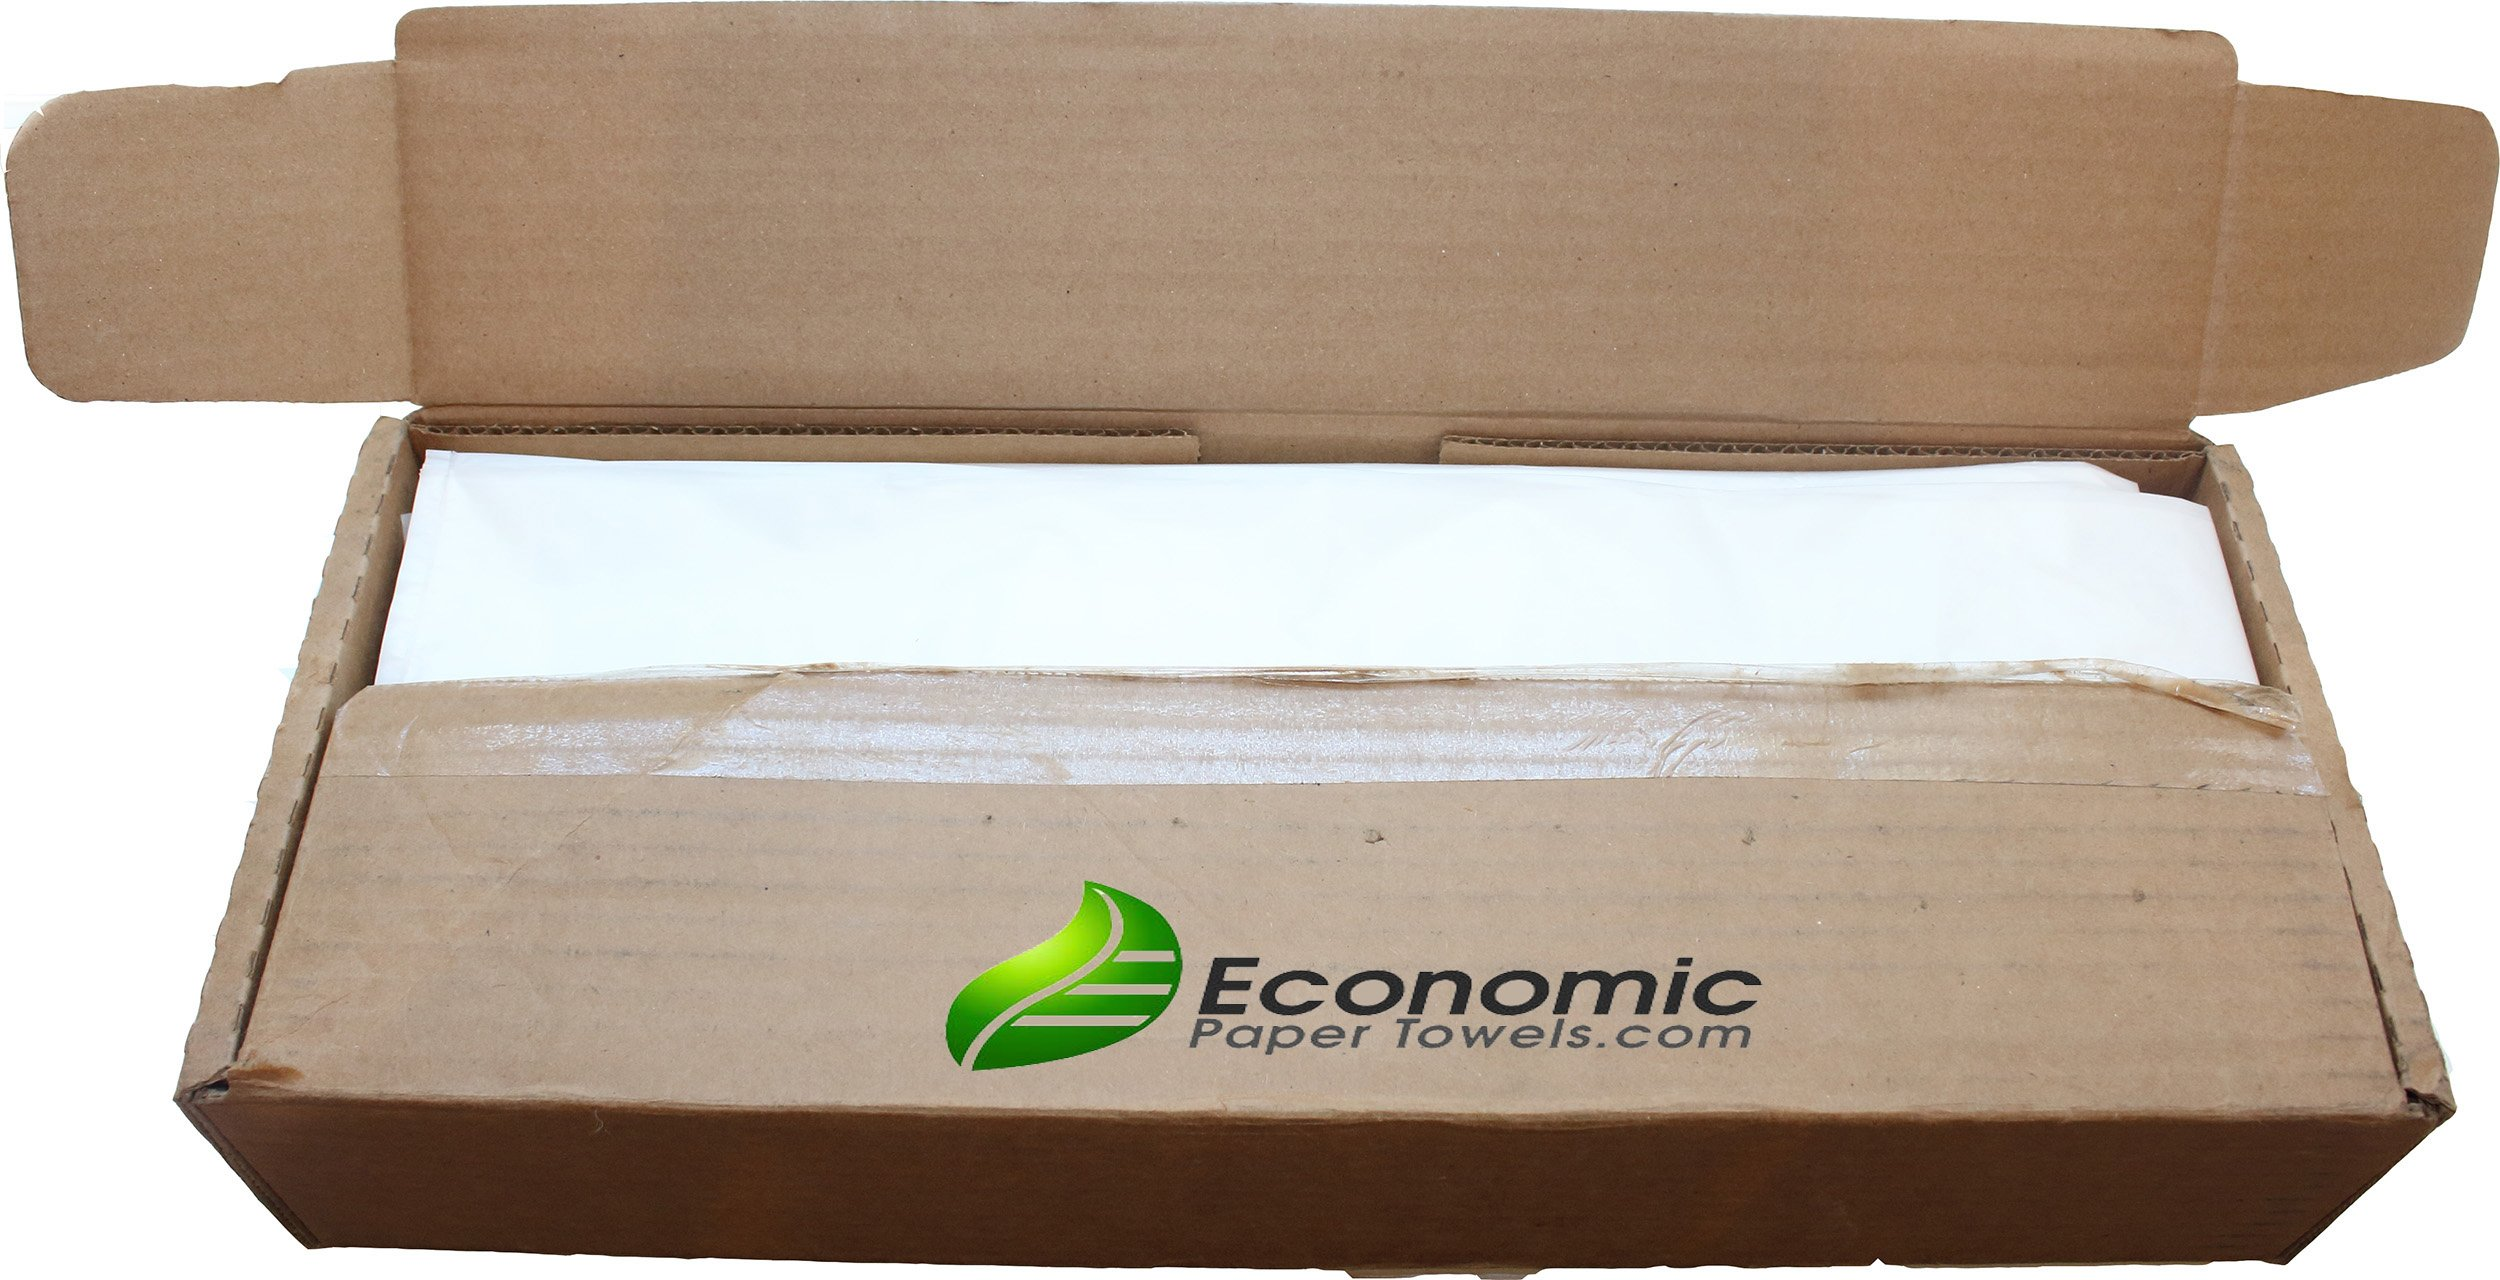 Economic Paper Towels 2427CL9 Eco Friendly Kitchen Trash and Garbage Bags, 250 Count, 13 Gallon